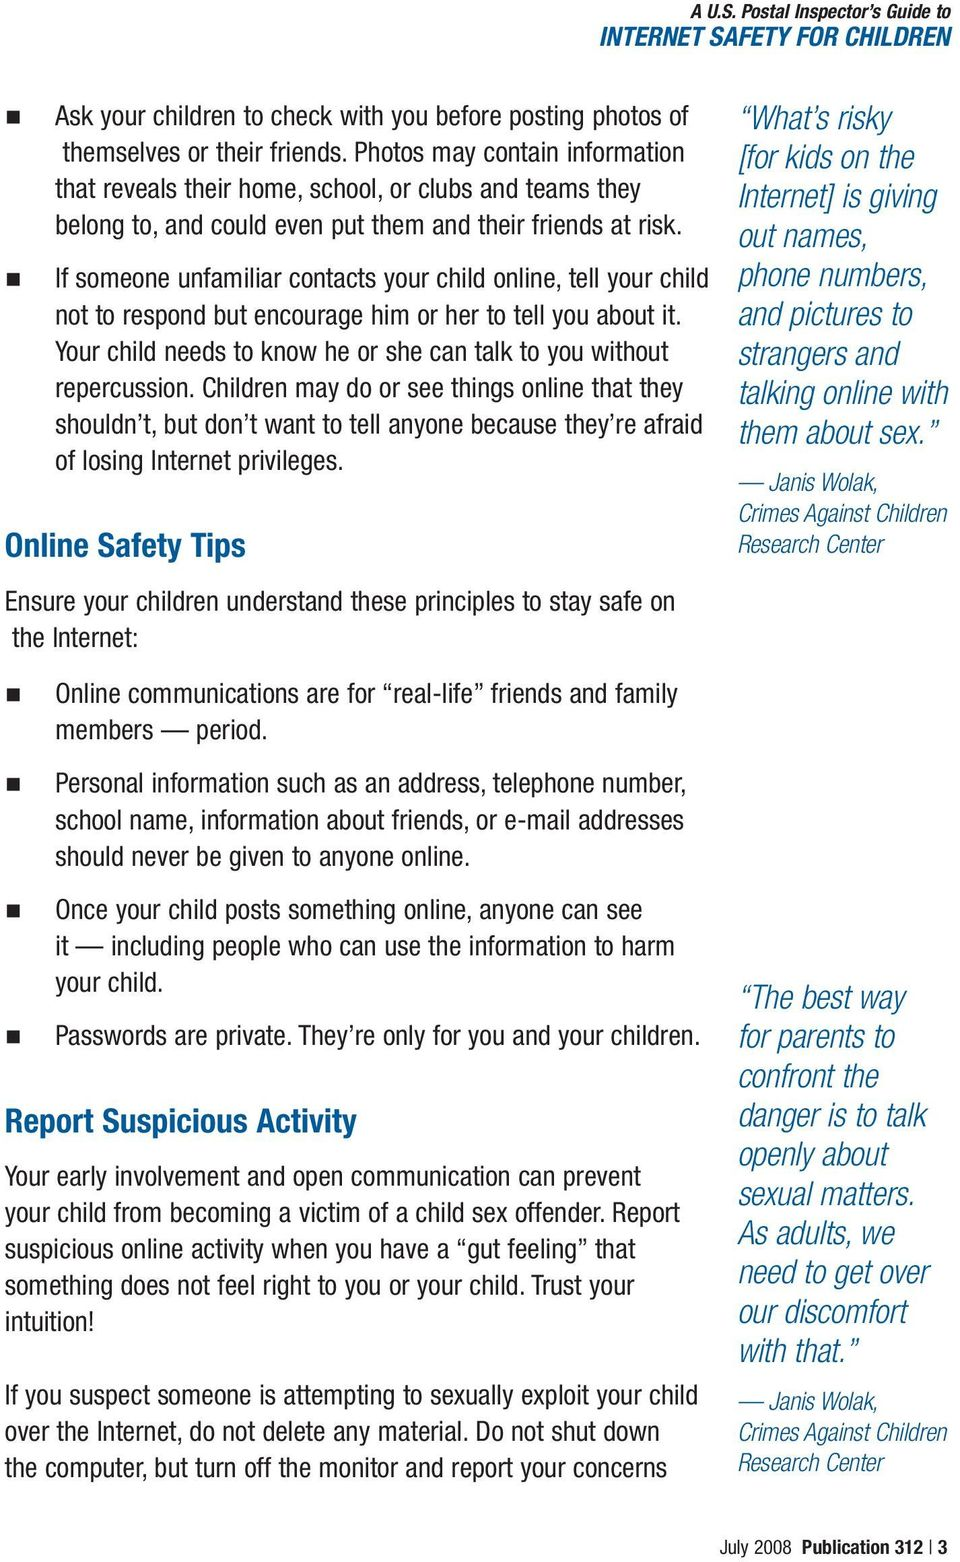 If someone unfamiliar contacts your child online, tell your child not to respond but encourage him or her to tell you about it. Your child needs to know he or she can talk to you without repercussion.